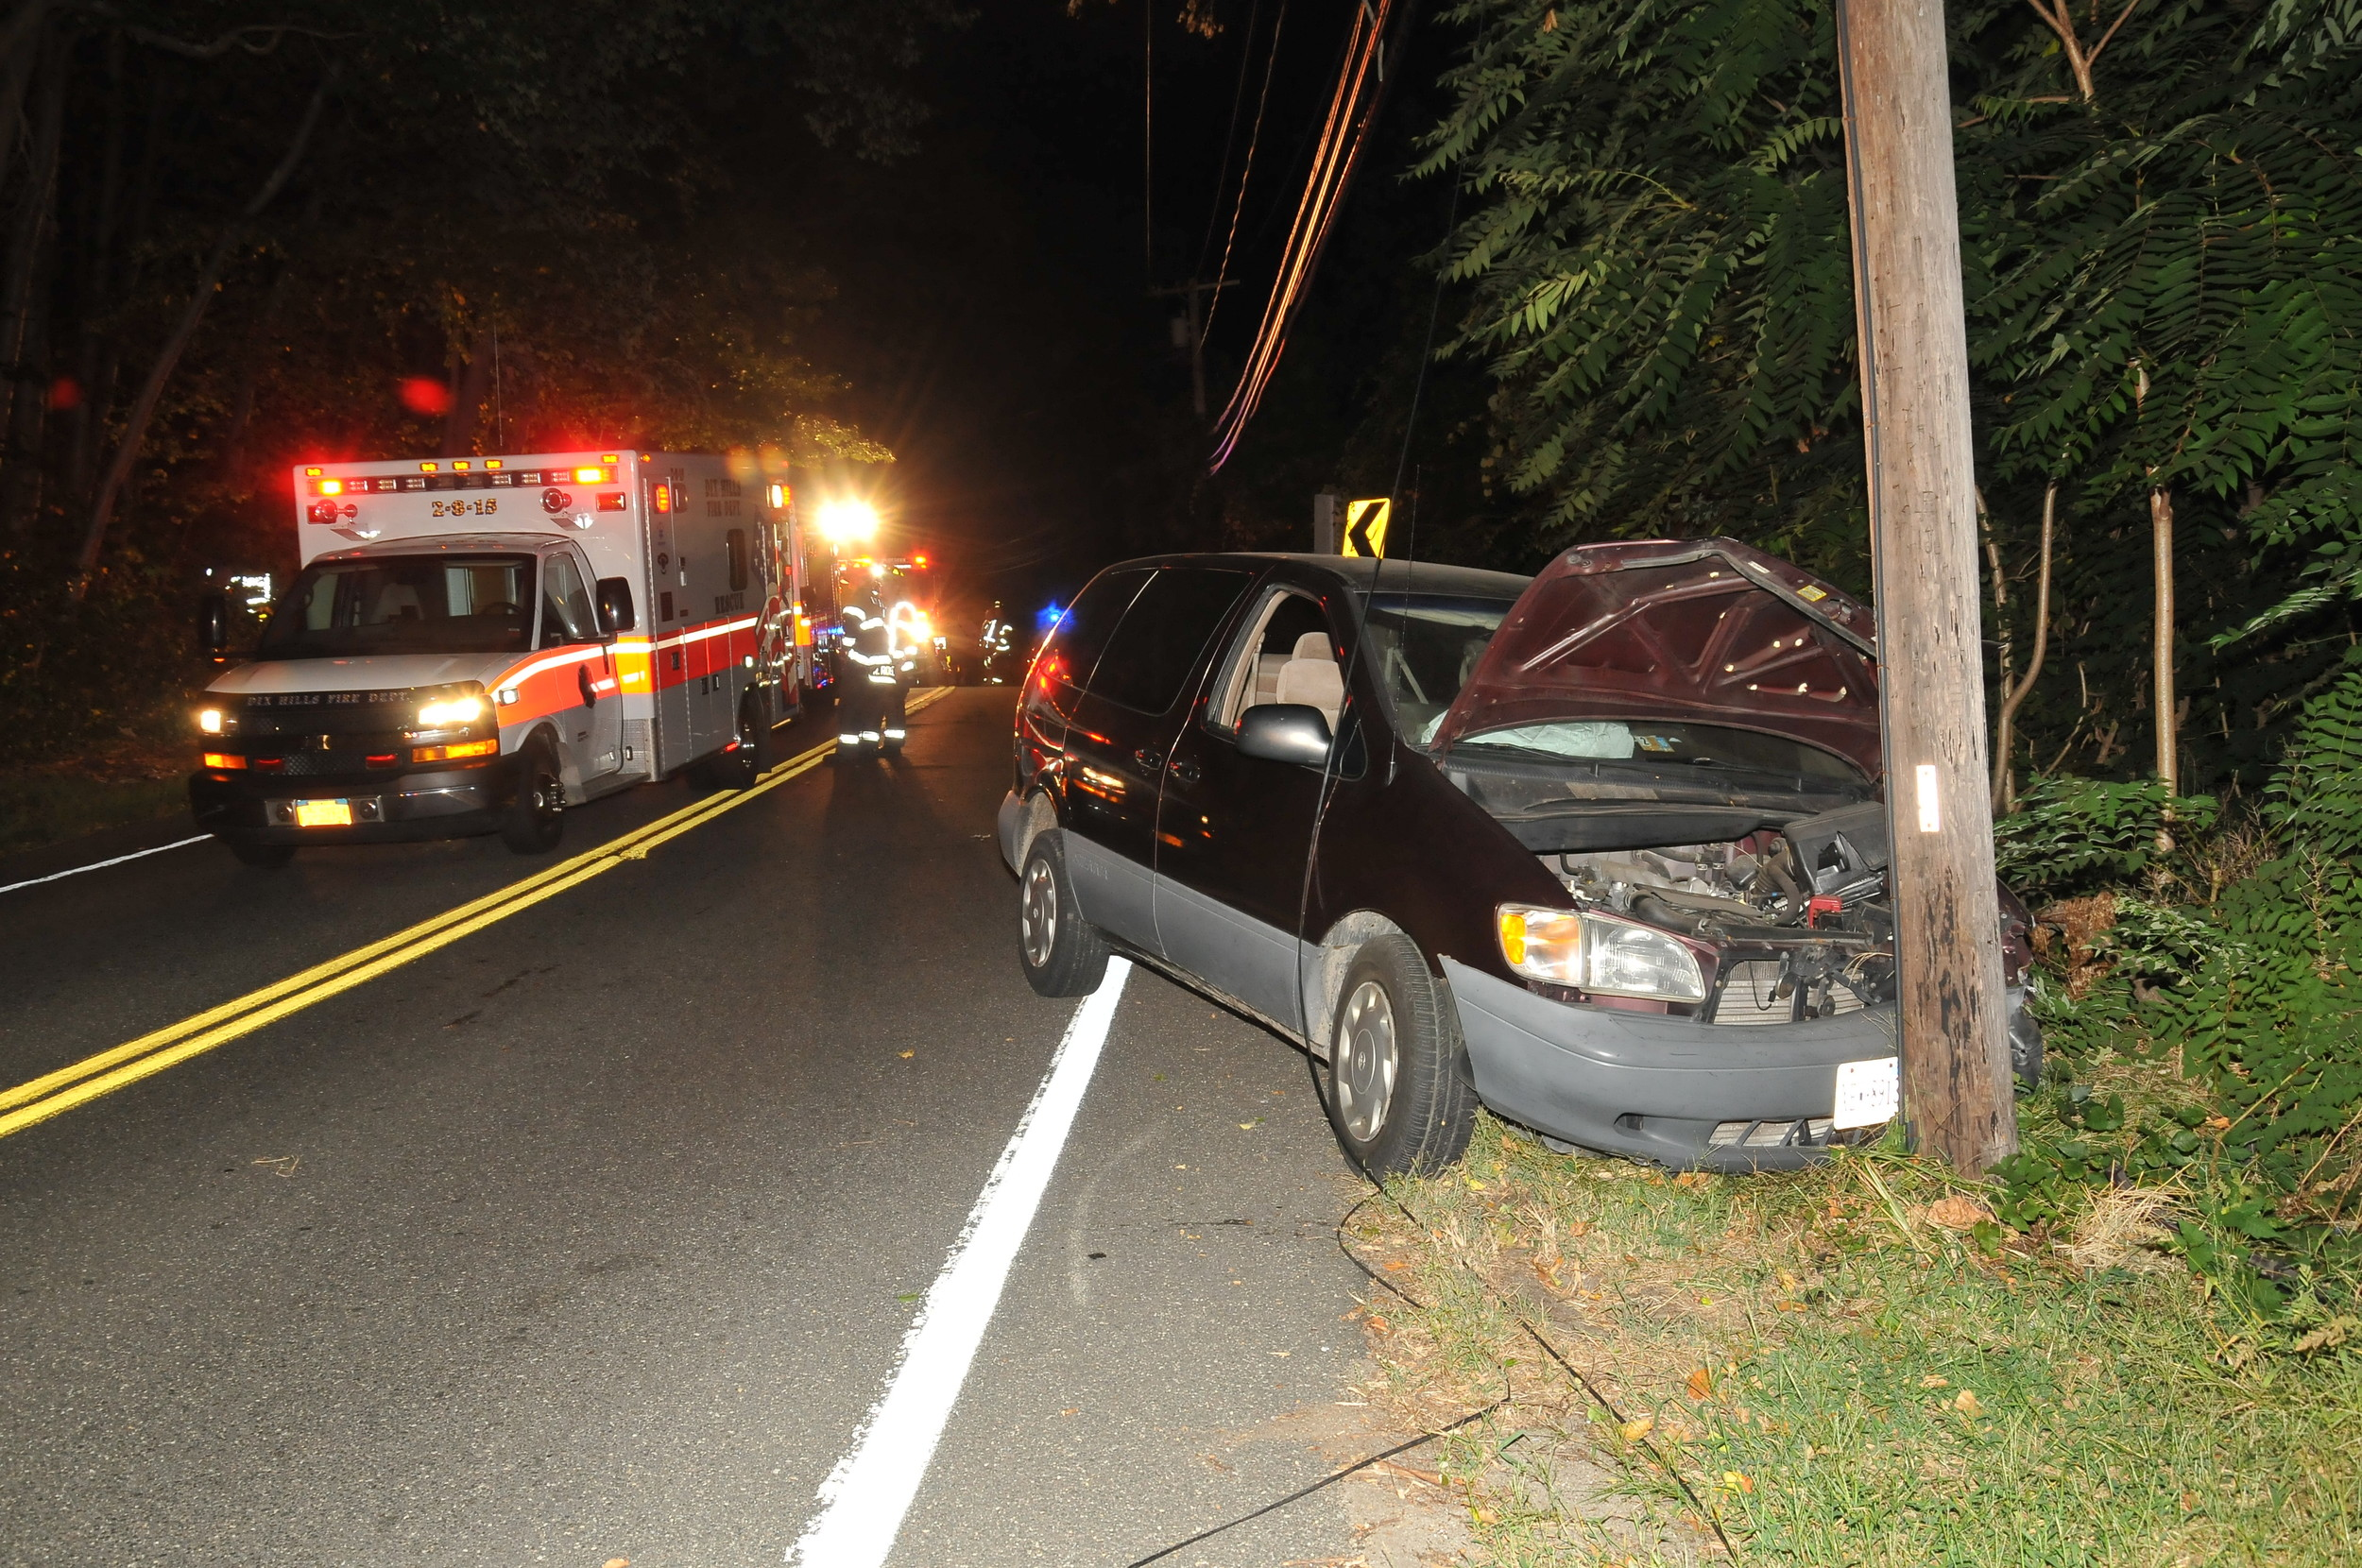 Bernabe Ortegavela, of Brentwood, was driving drunk when his 2000 Toyota Sienna collided with a Nissan Maxima and then crashed into a utility pole on Vanderbilt Parkway in Dix Hills on Sept. 8, 2015, Suffolk police said.Photo by Steve Silverman